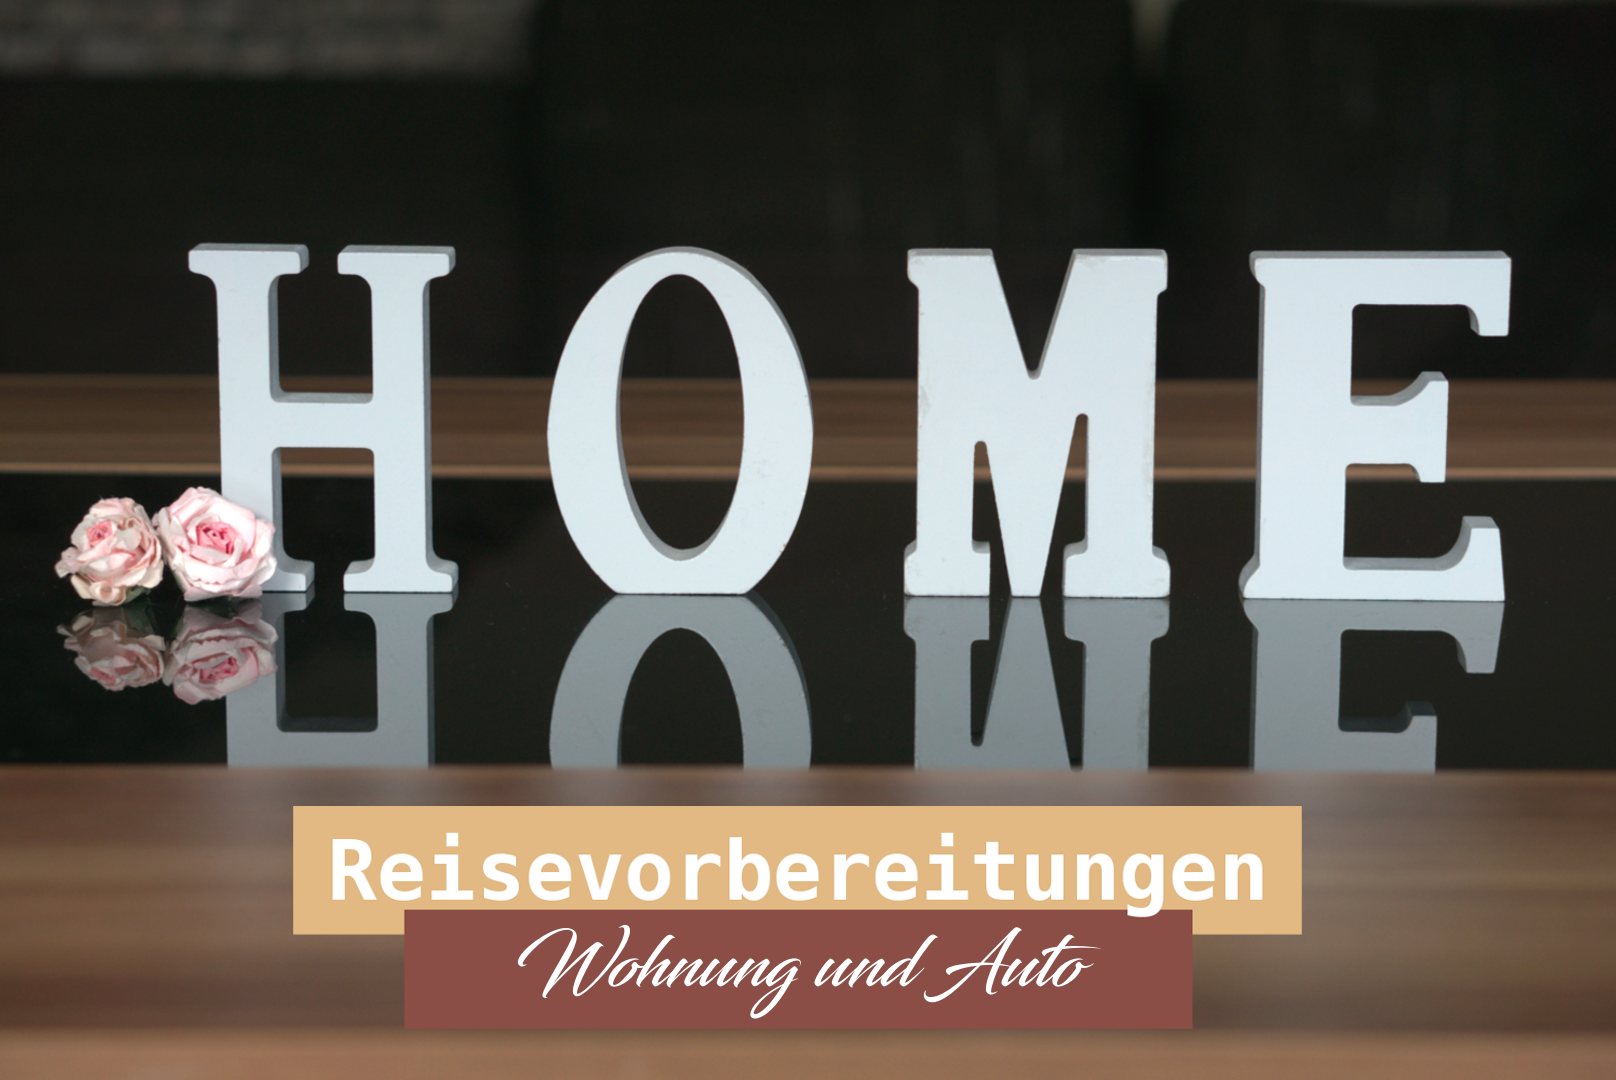 reisevorbereitungen zum thema wohnung und auto. Black Bedroom Furniture Sets. Home Design Ideas